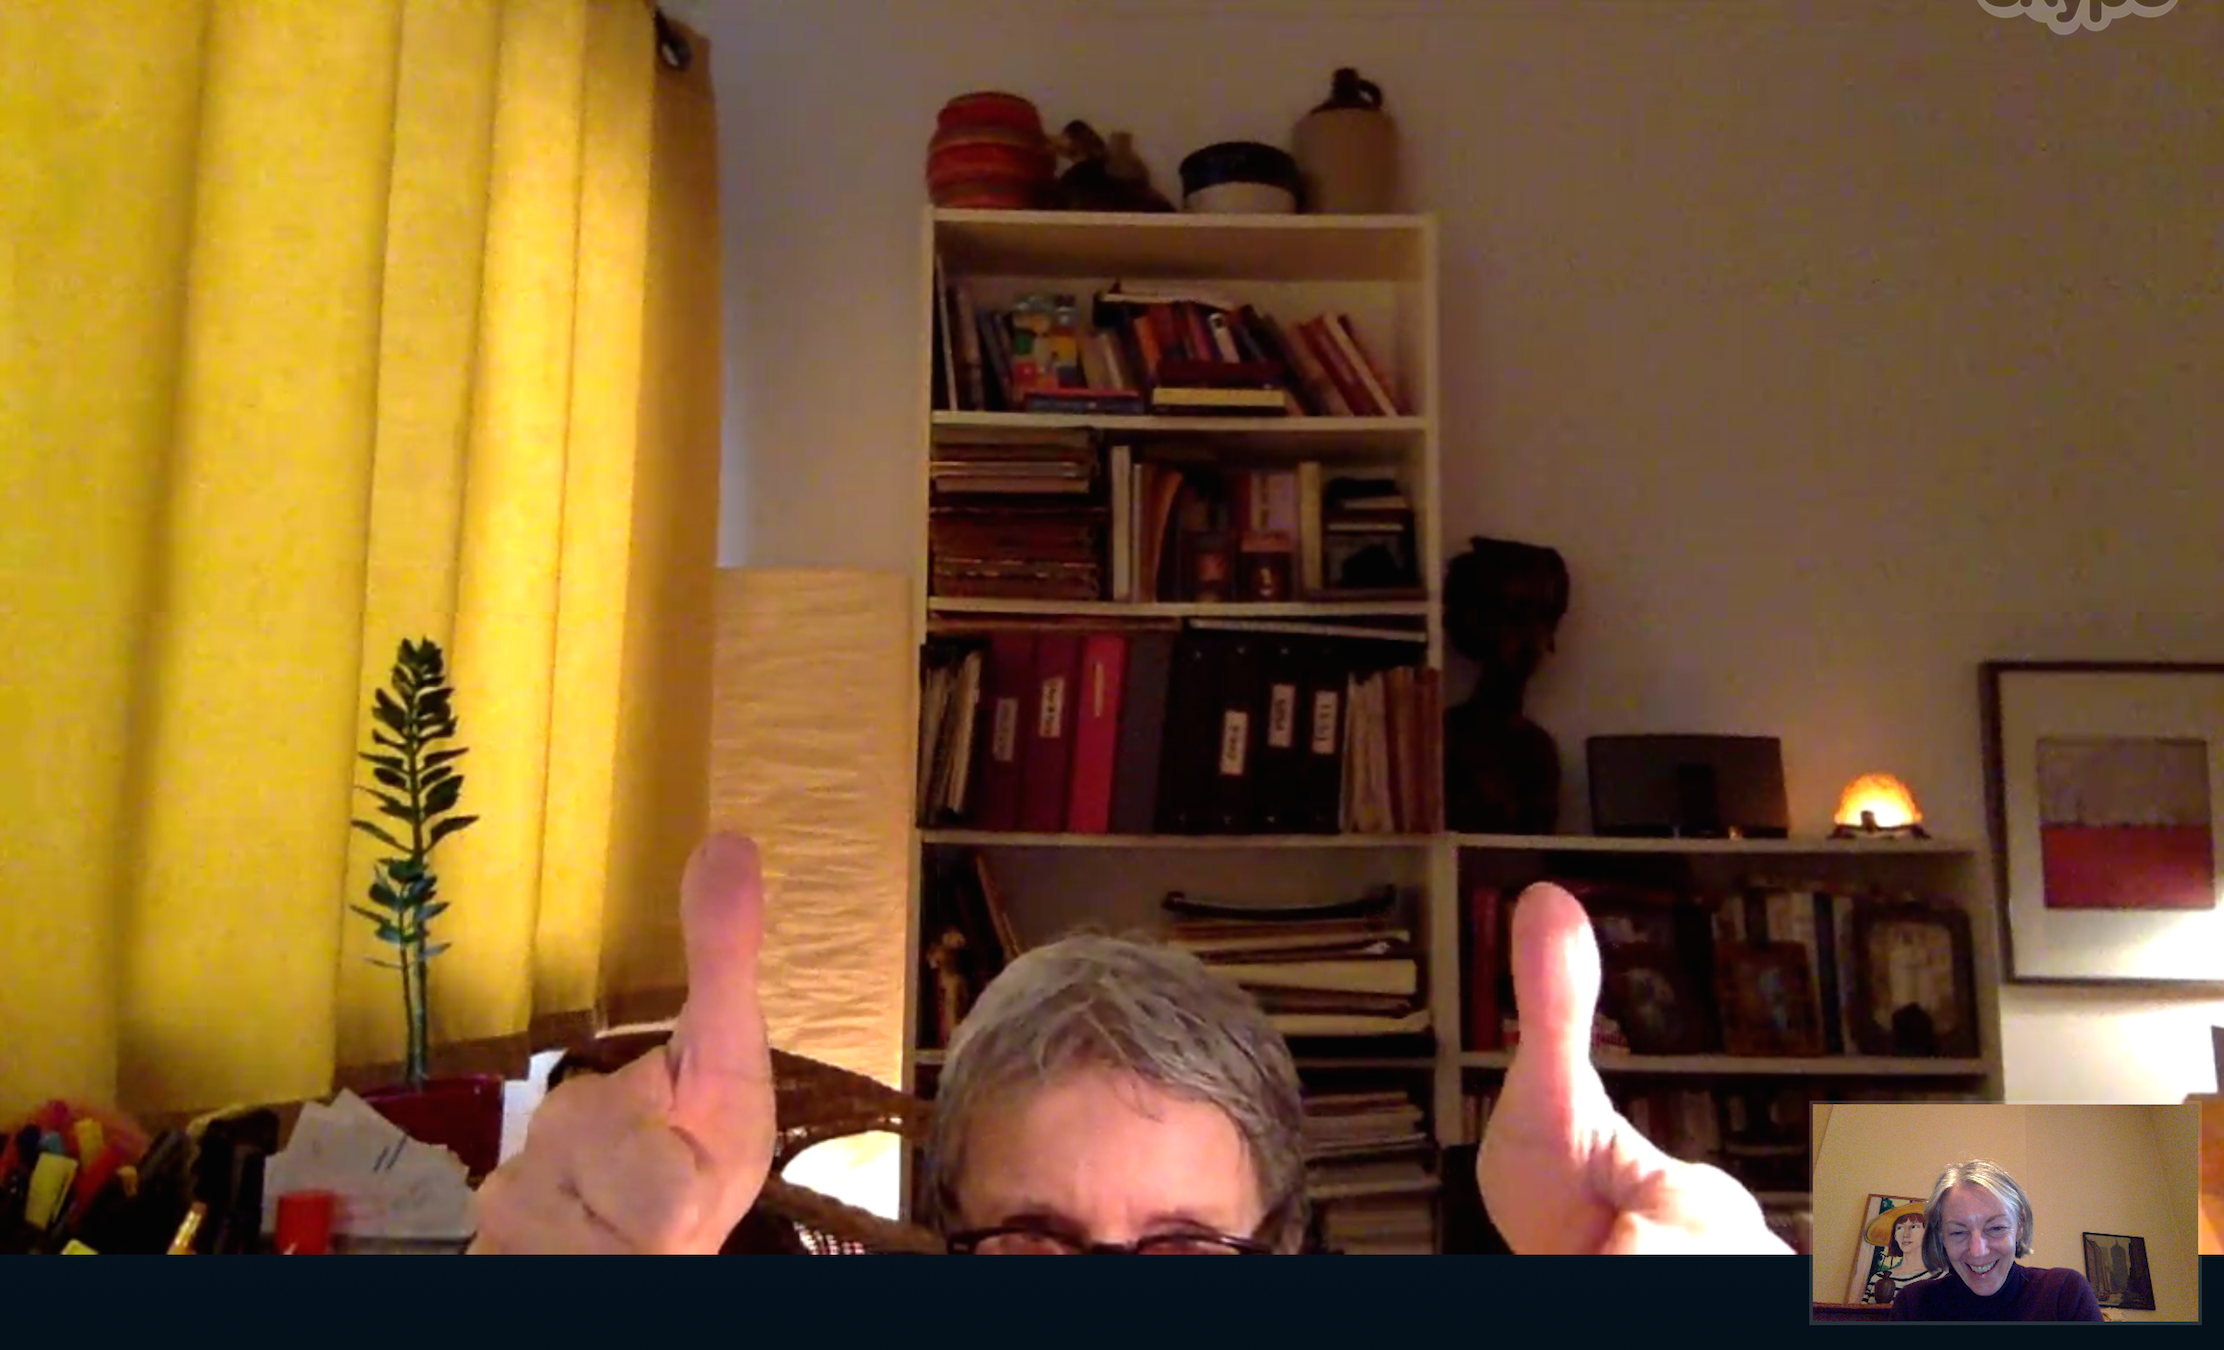 Screengrab of the elusive Mudd Lavoie giving me two thumbs up after I pitched to her over skype